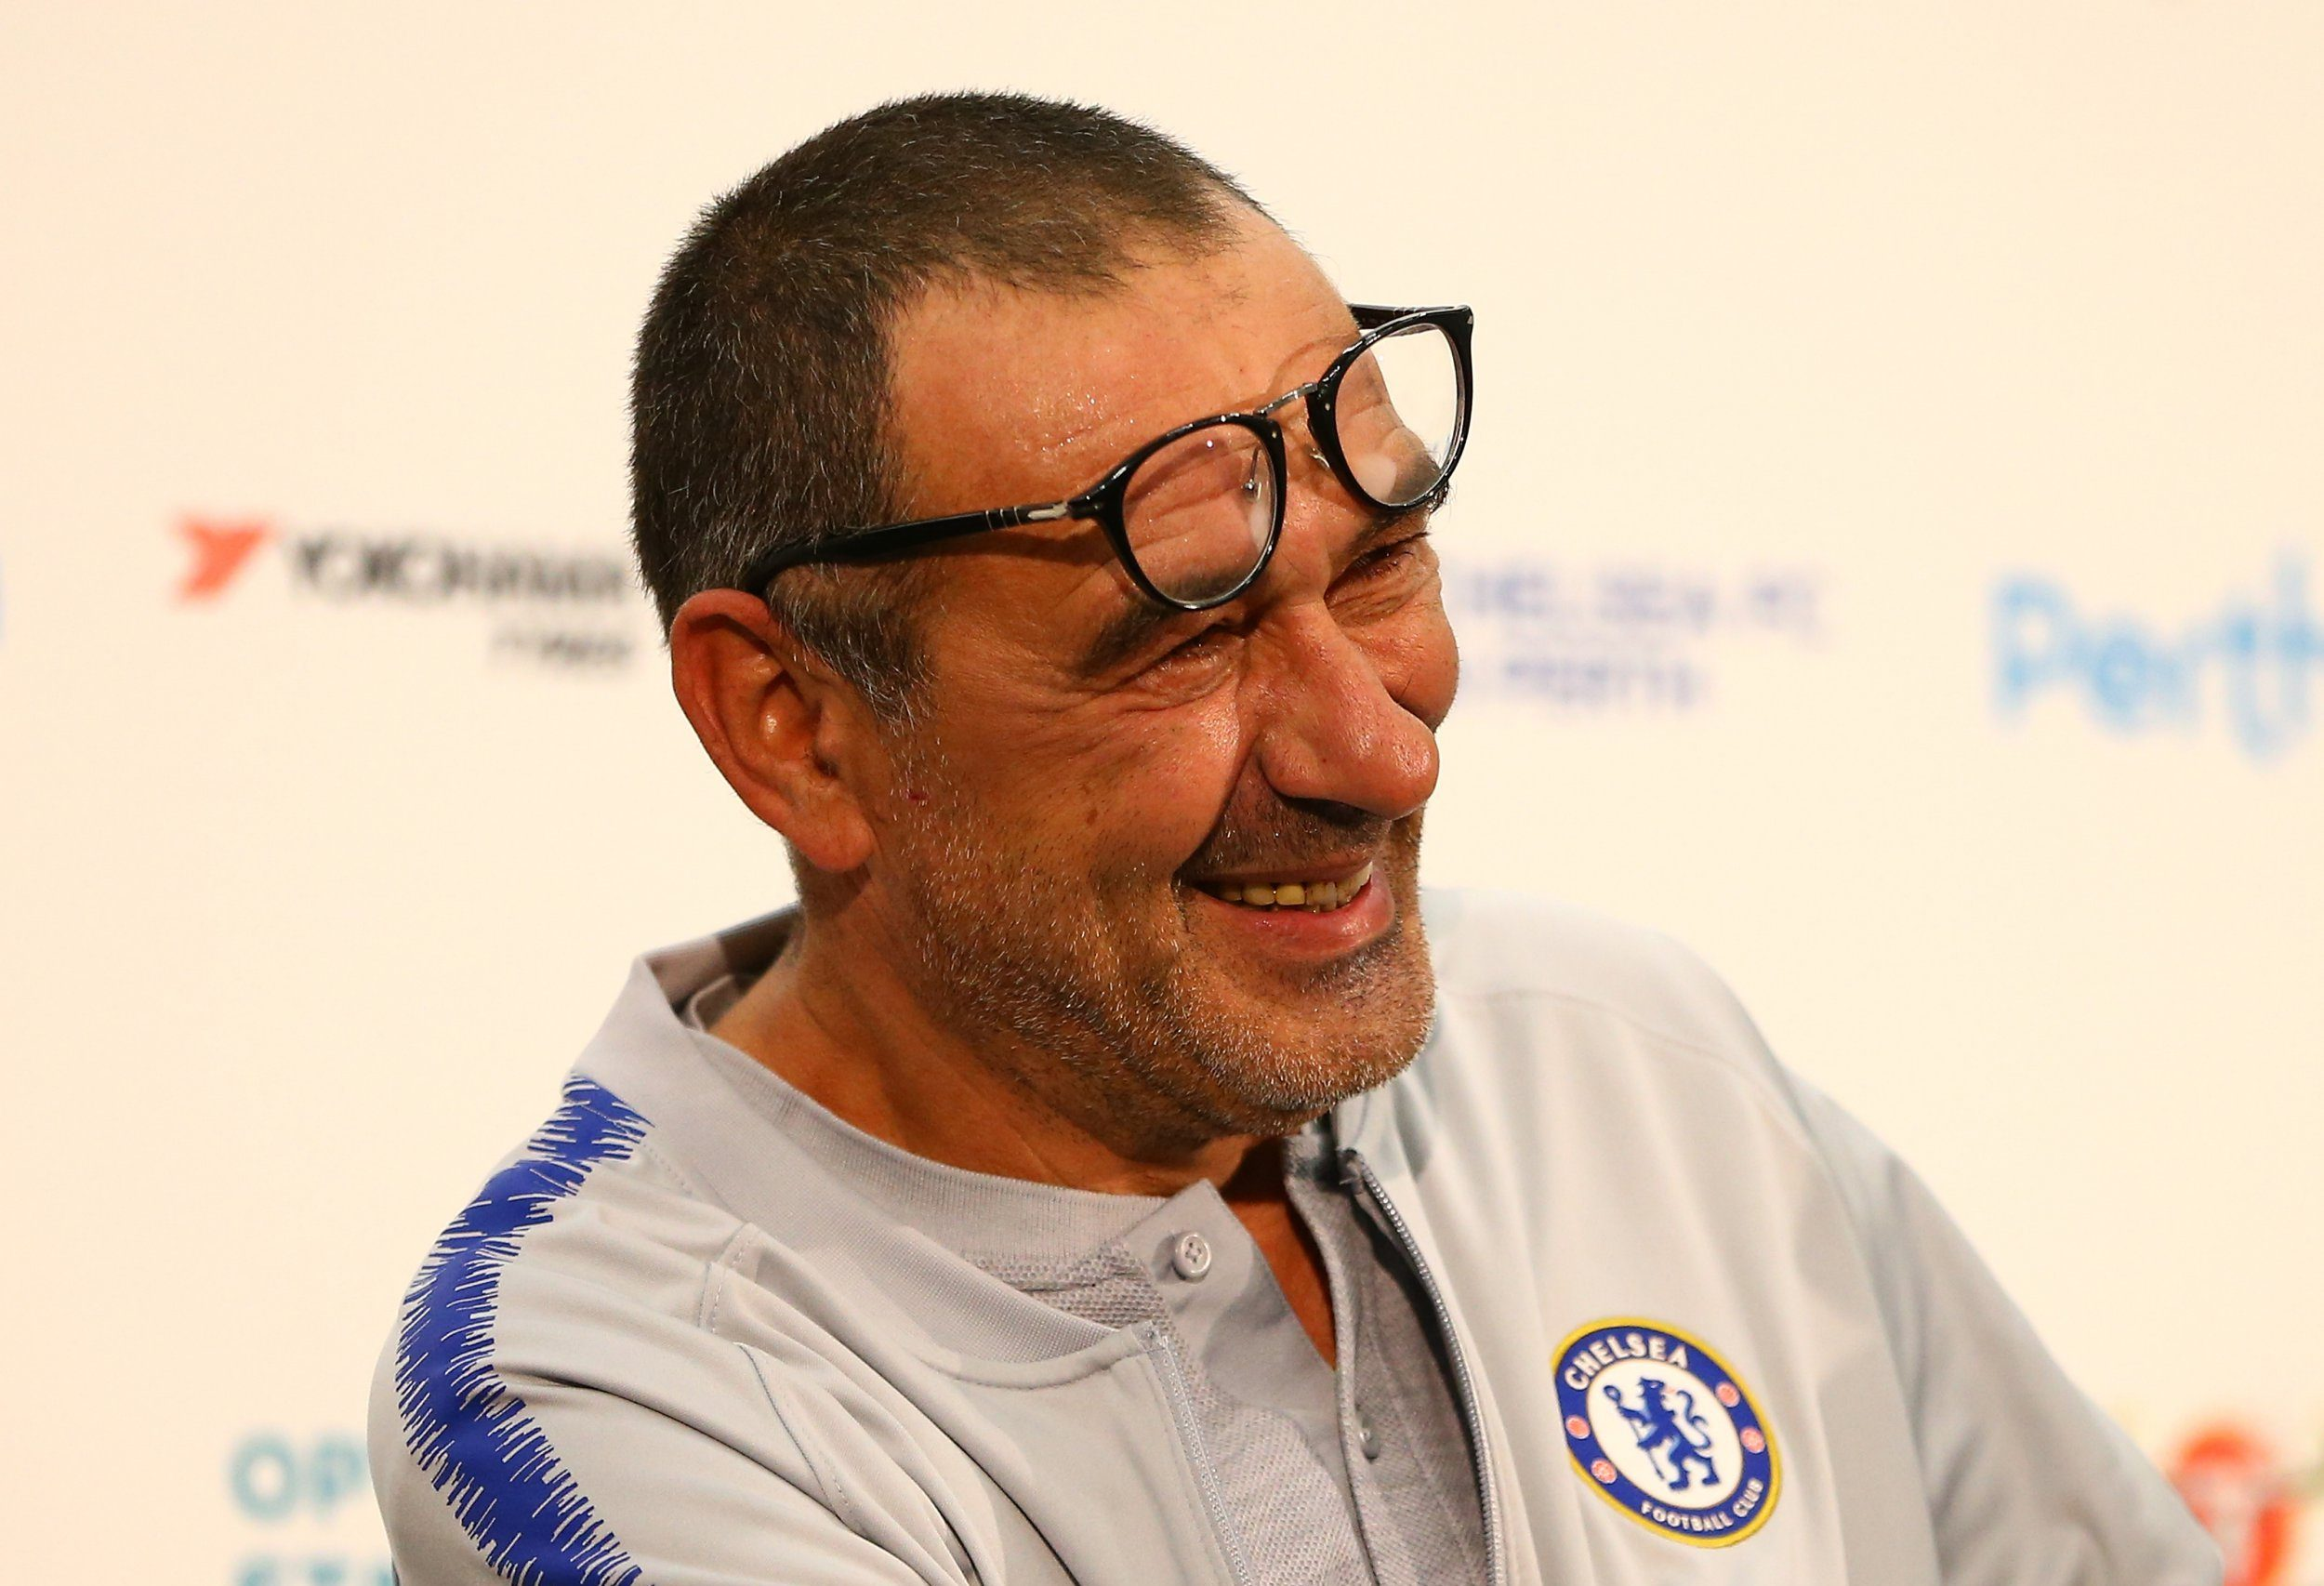 Mandatory Credit: Photo by Gary Day/Frozen in Motion/REX/Shutterstock (9762924am) Maurizio Sarri, Manager of Chelsea takes questions in the post match press conference Perth Glory v Chelsea, Pre-season Friendly, Football, Optus Stadium, Perth, Australia - 23 Jul 2018